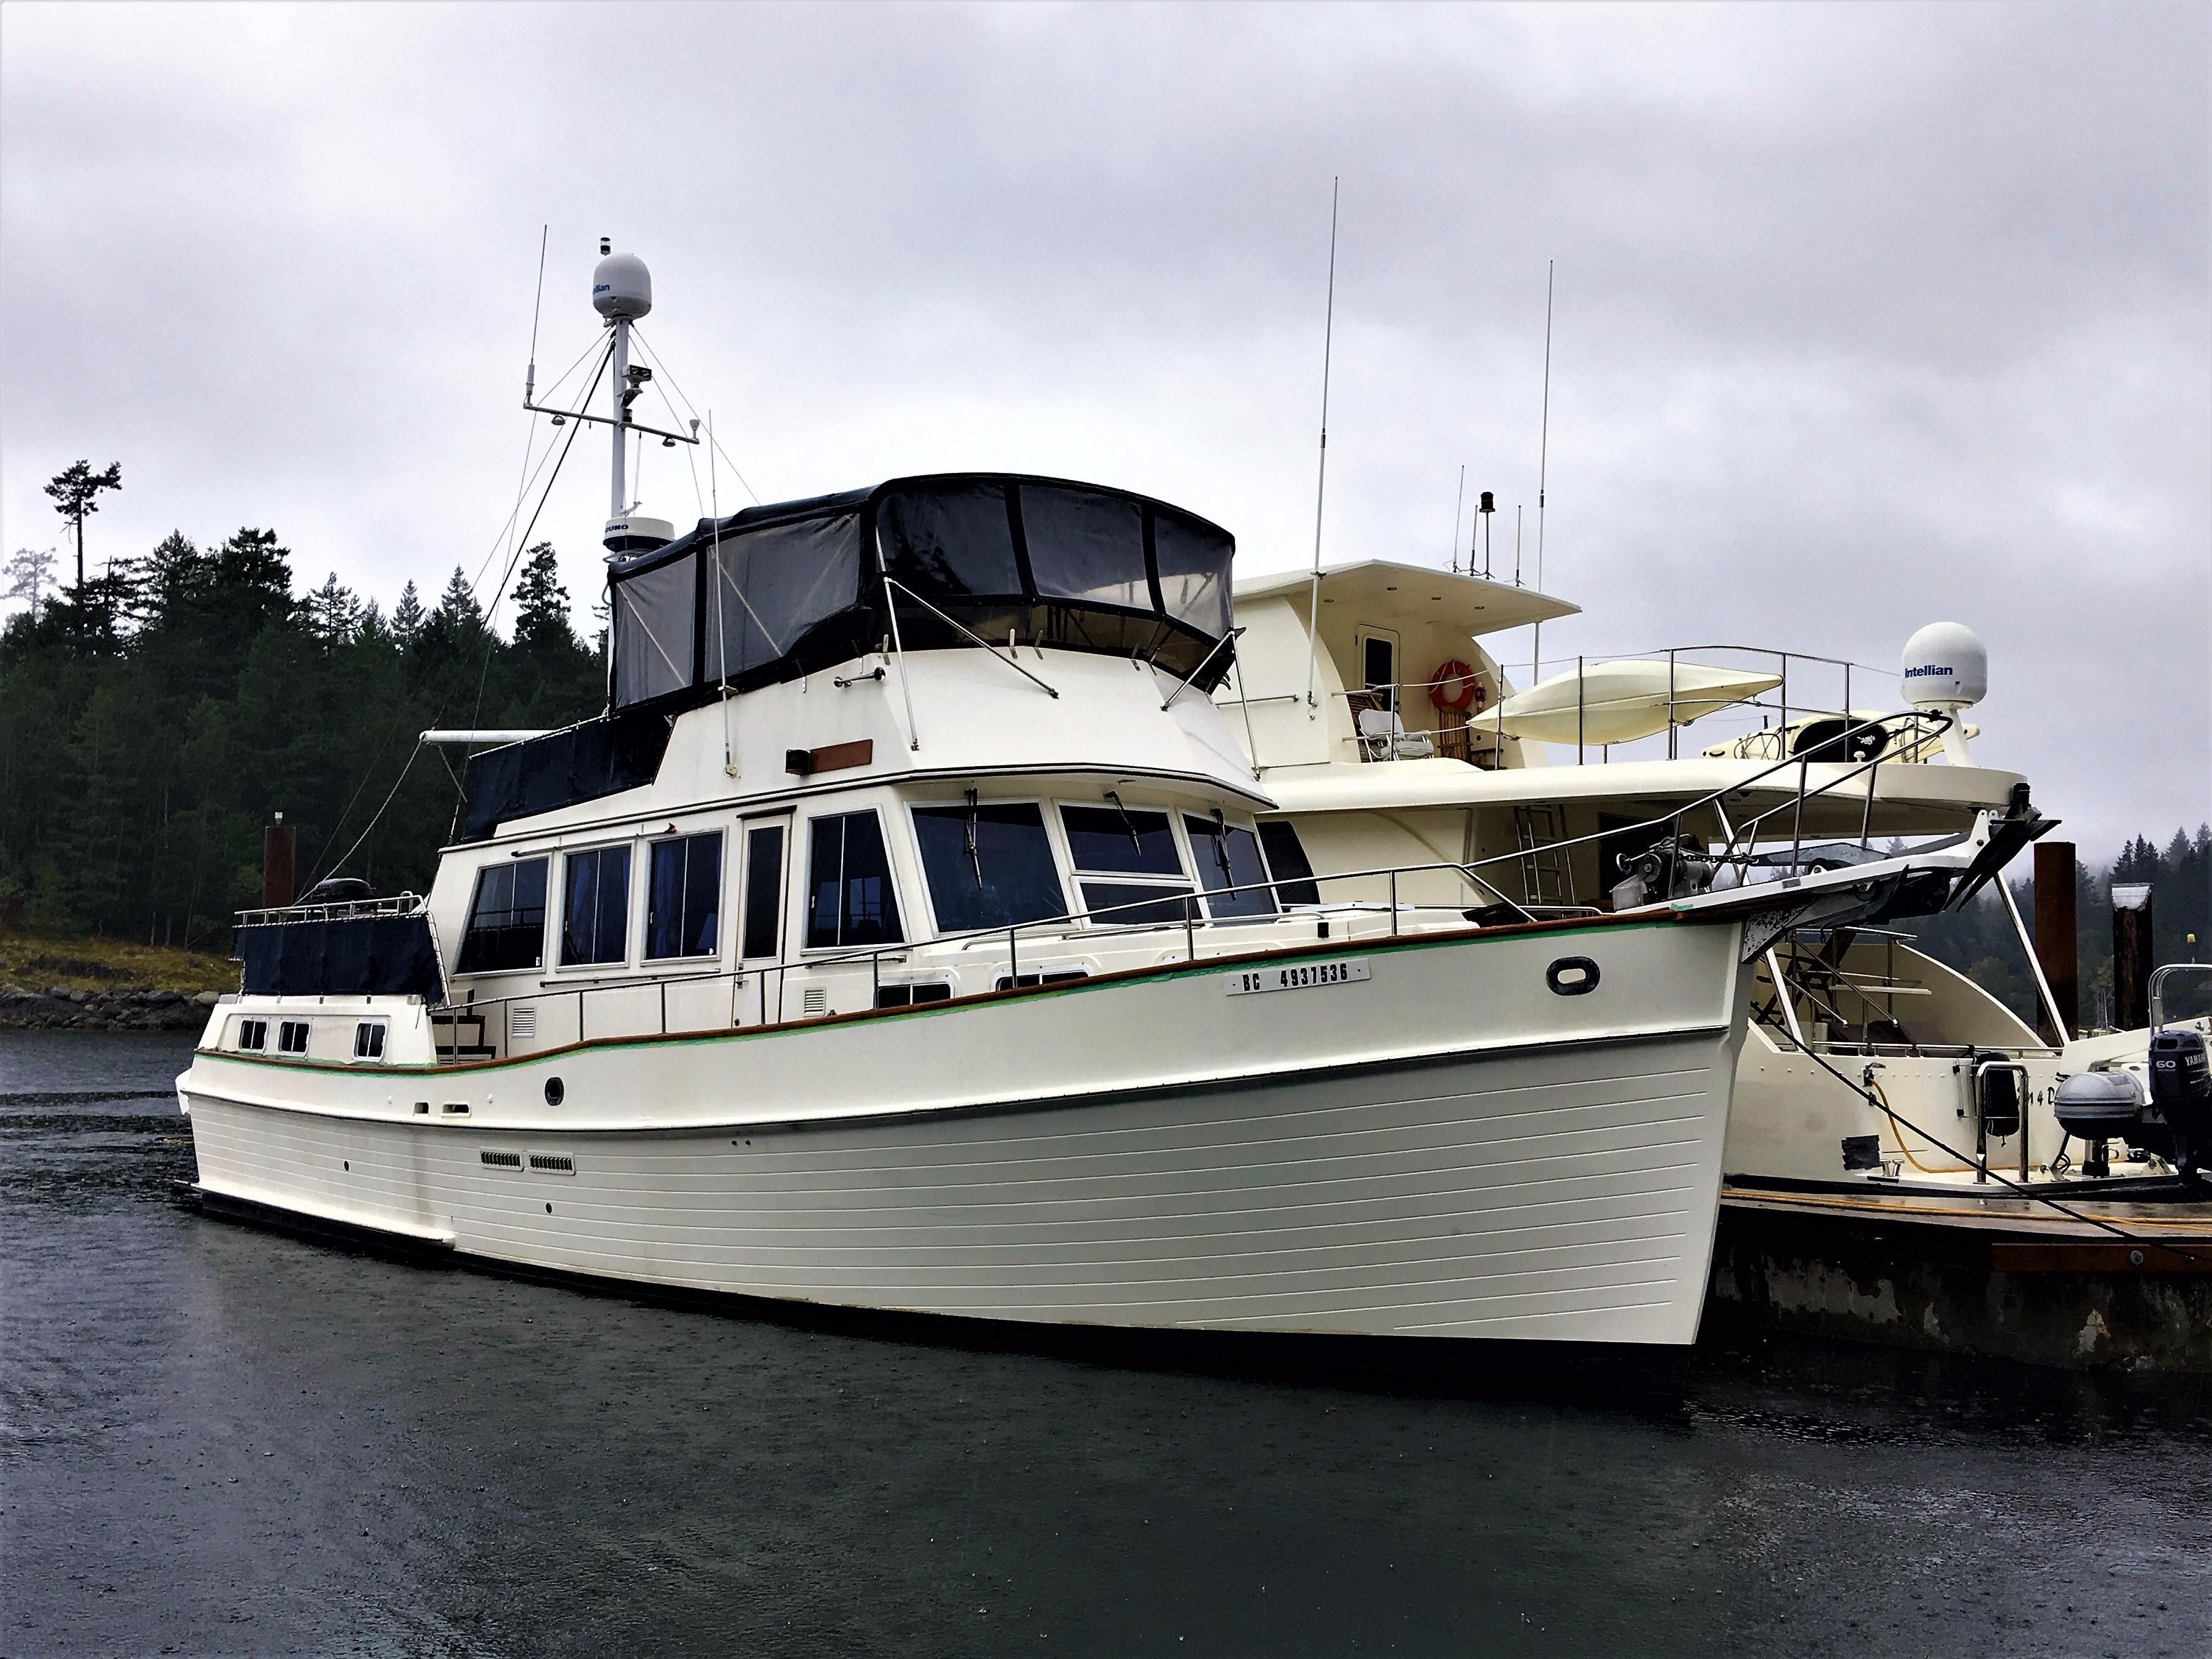 1989 grand banks motor yacht power boat for sale www for Grand banks motor yachts for sale